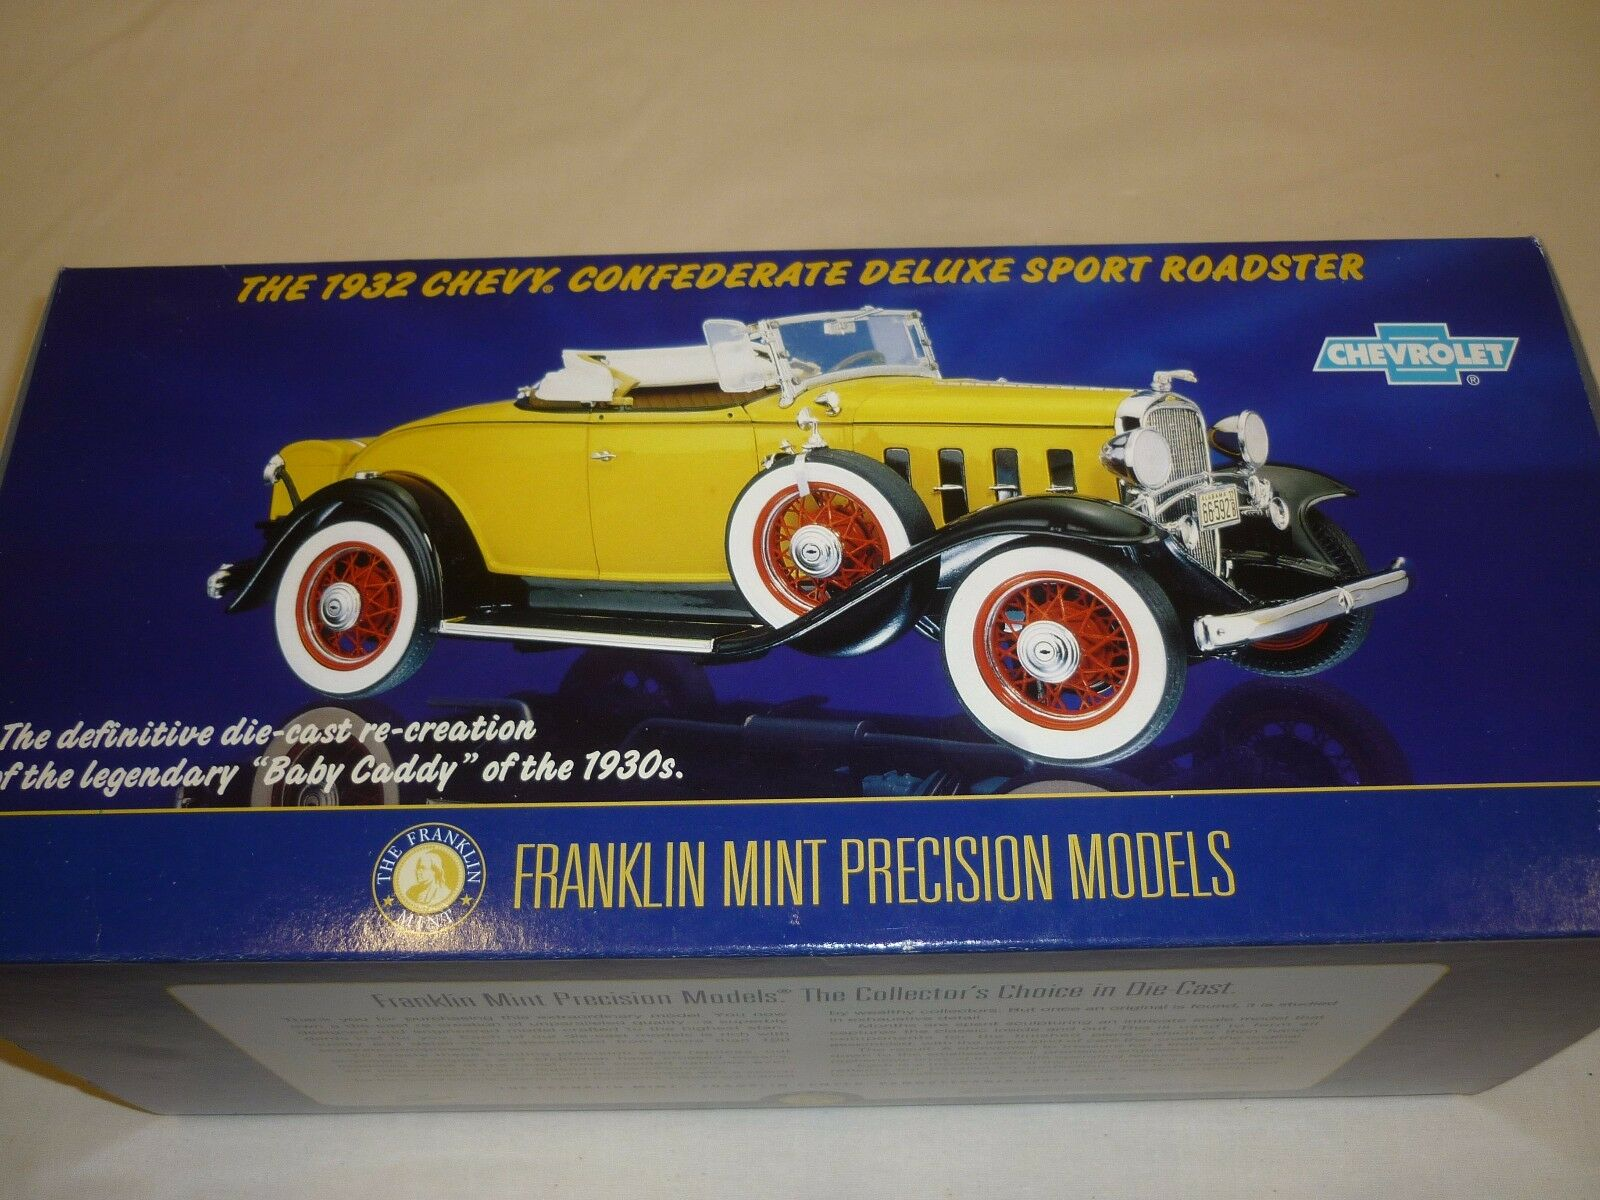 Franklin mint 1932 Chevrolet confederate deluxe Sport roadster, boxed